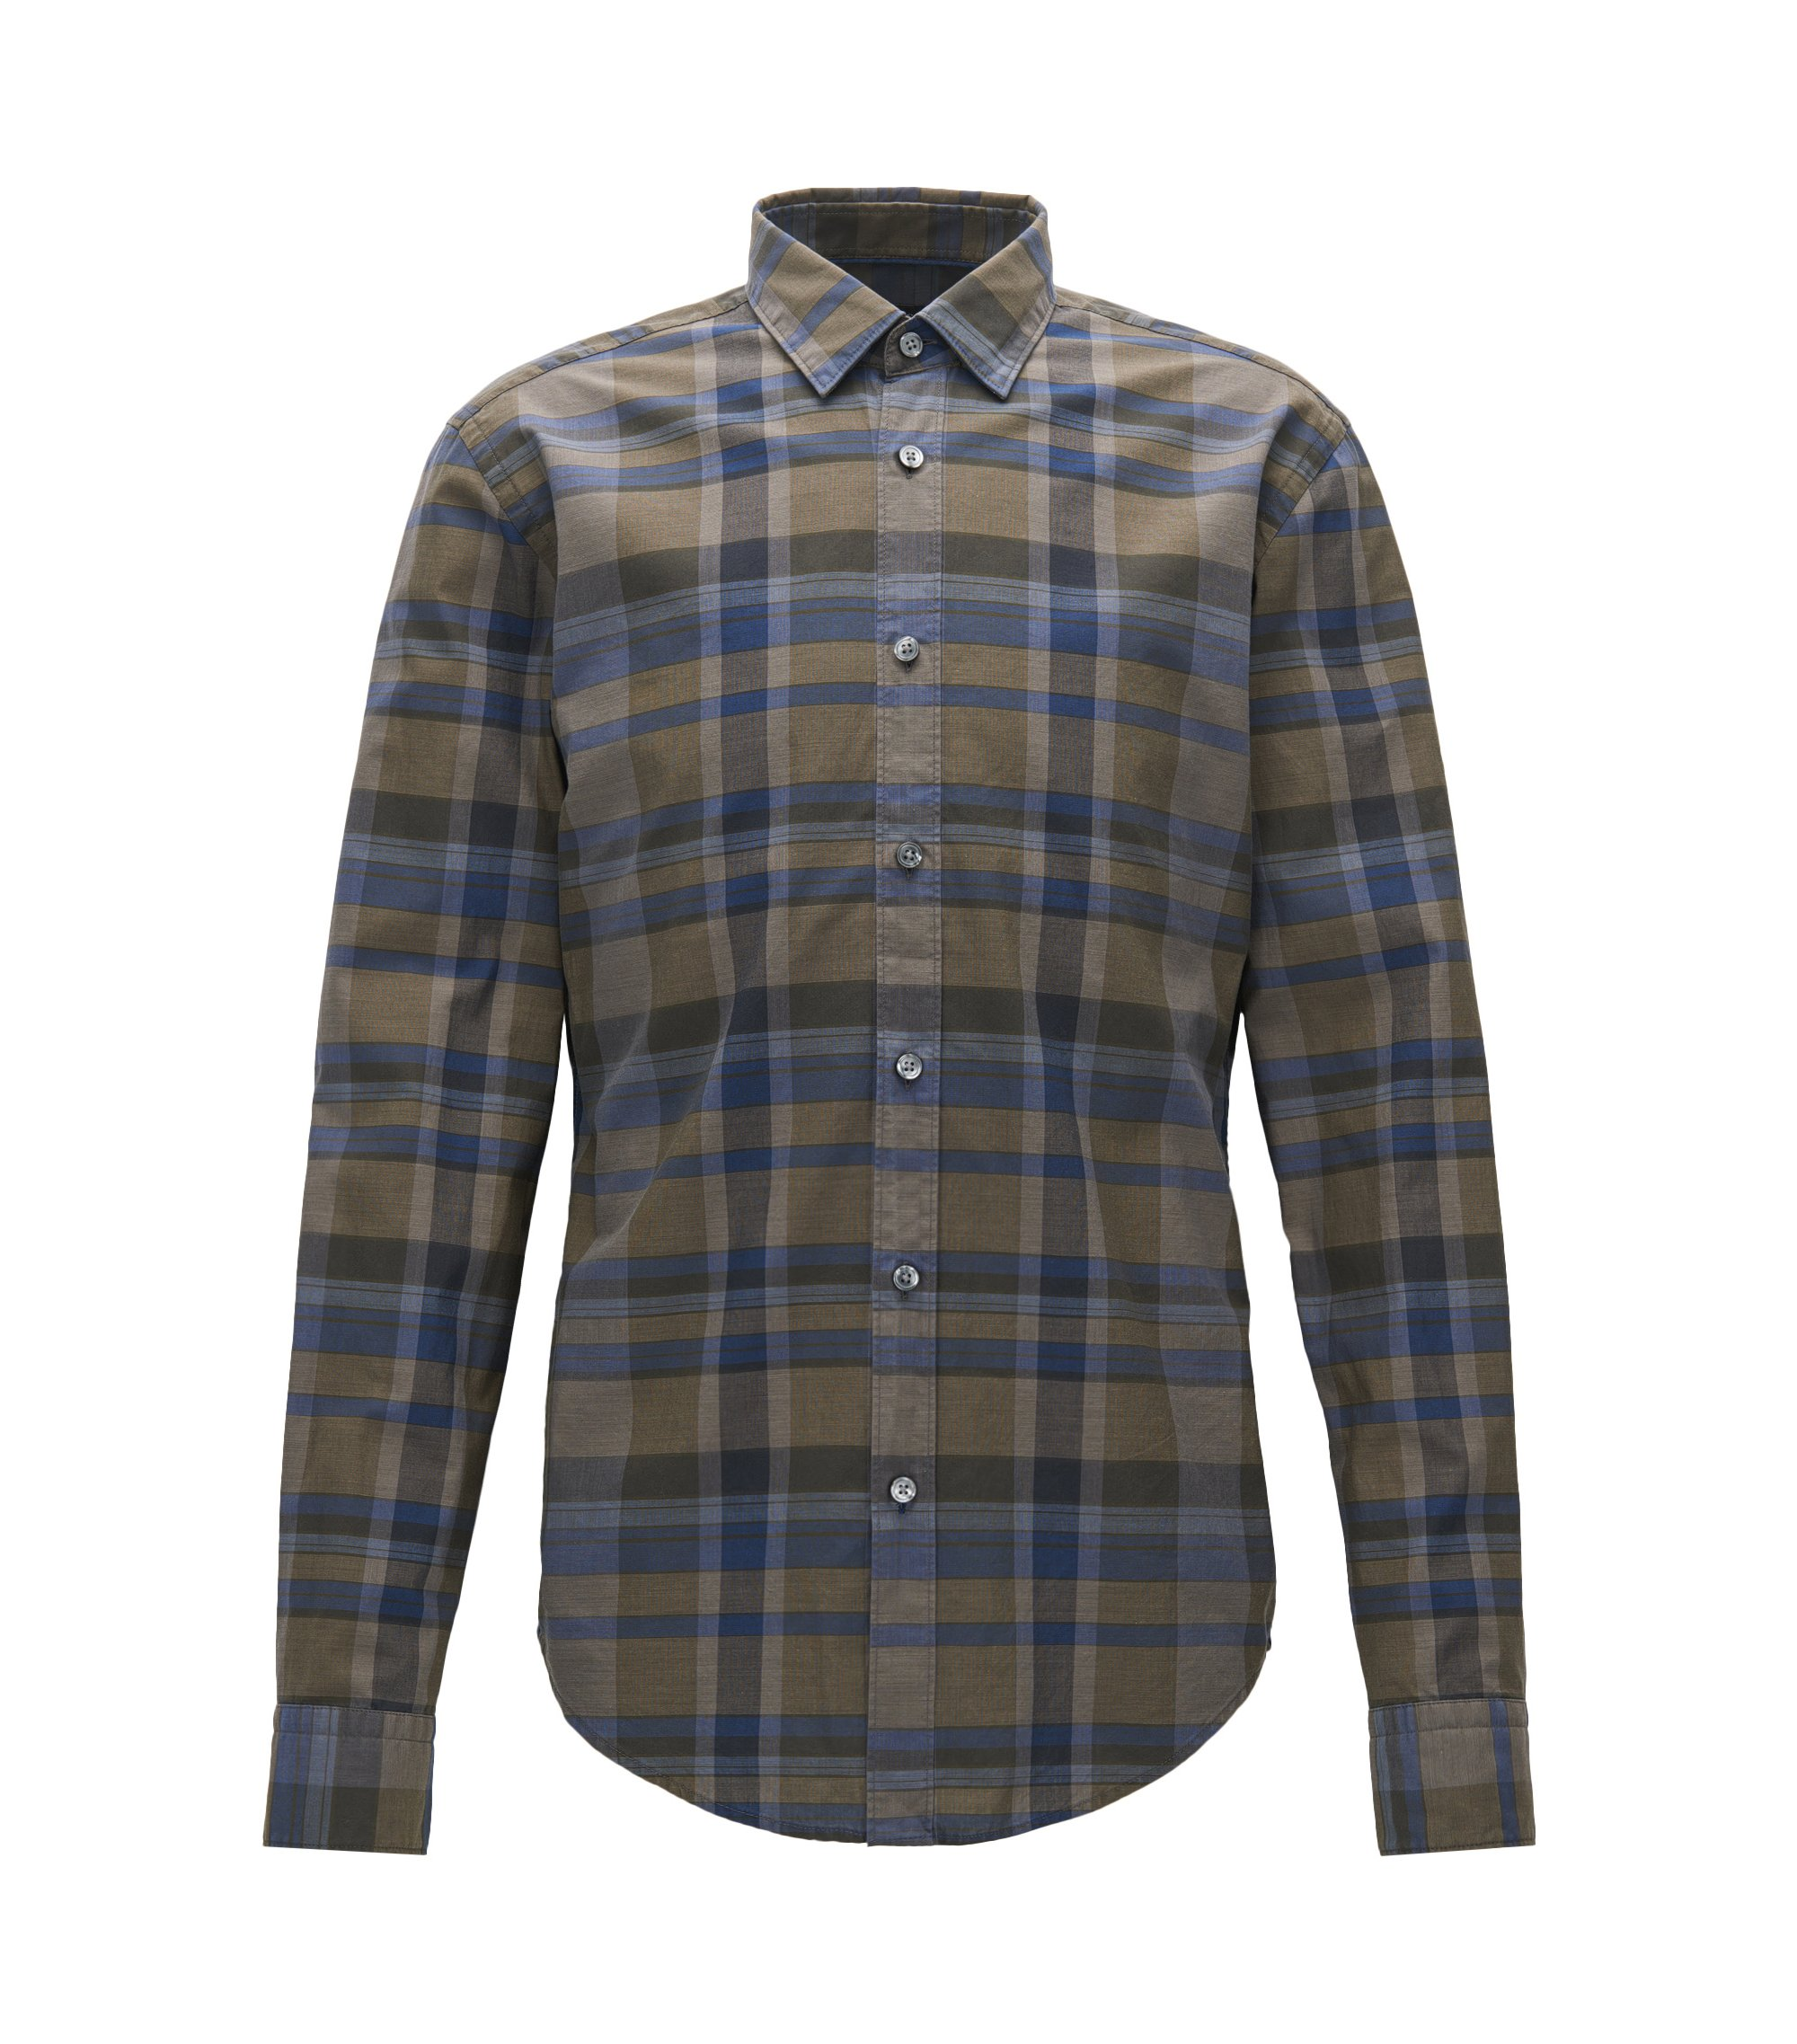 Plaid Cotton Button Down Shirt, Slim Fit | Ronni, Open Green